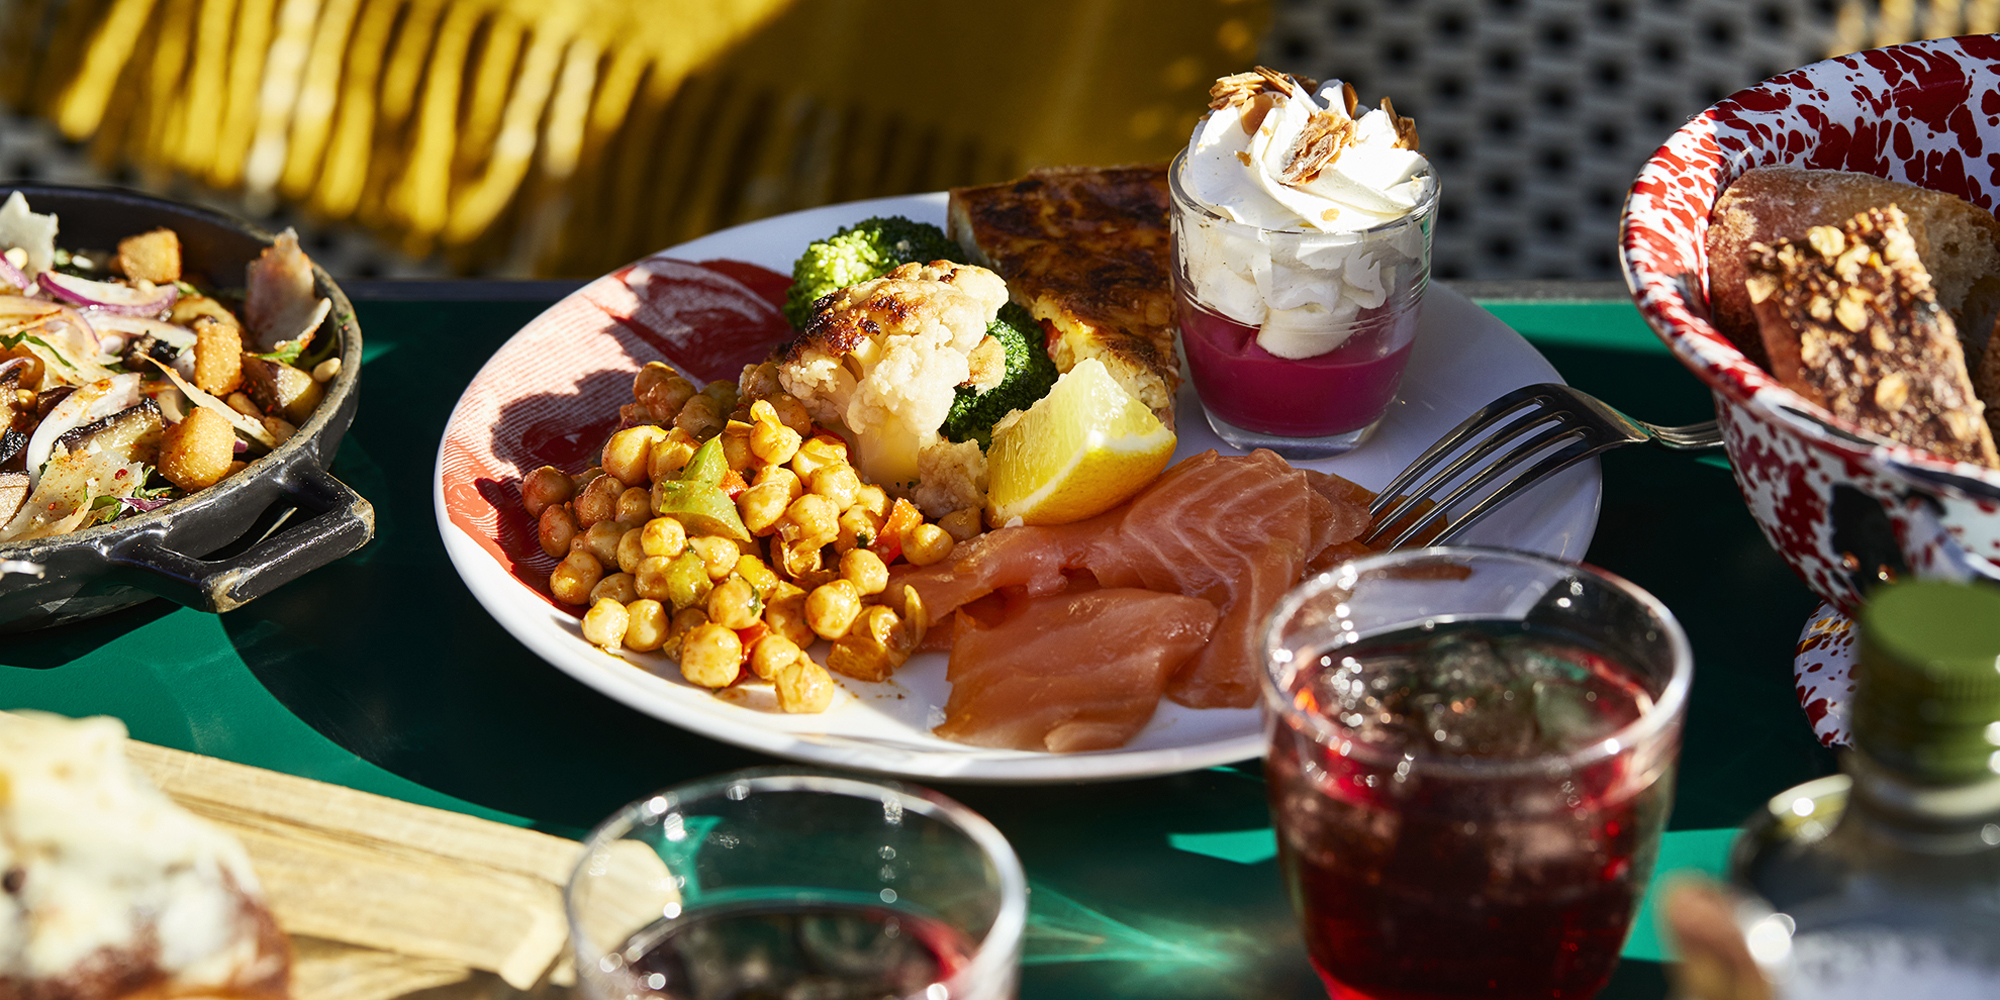 Brunch Mama Shelter (31000 Toulouse)